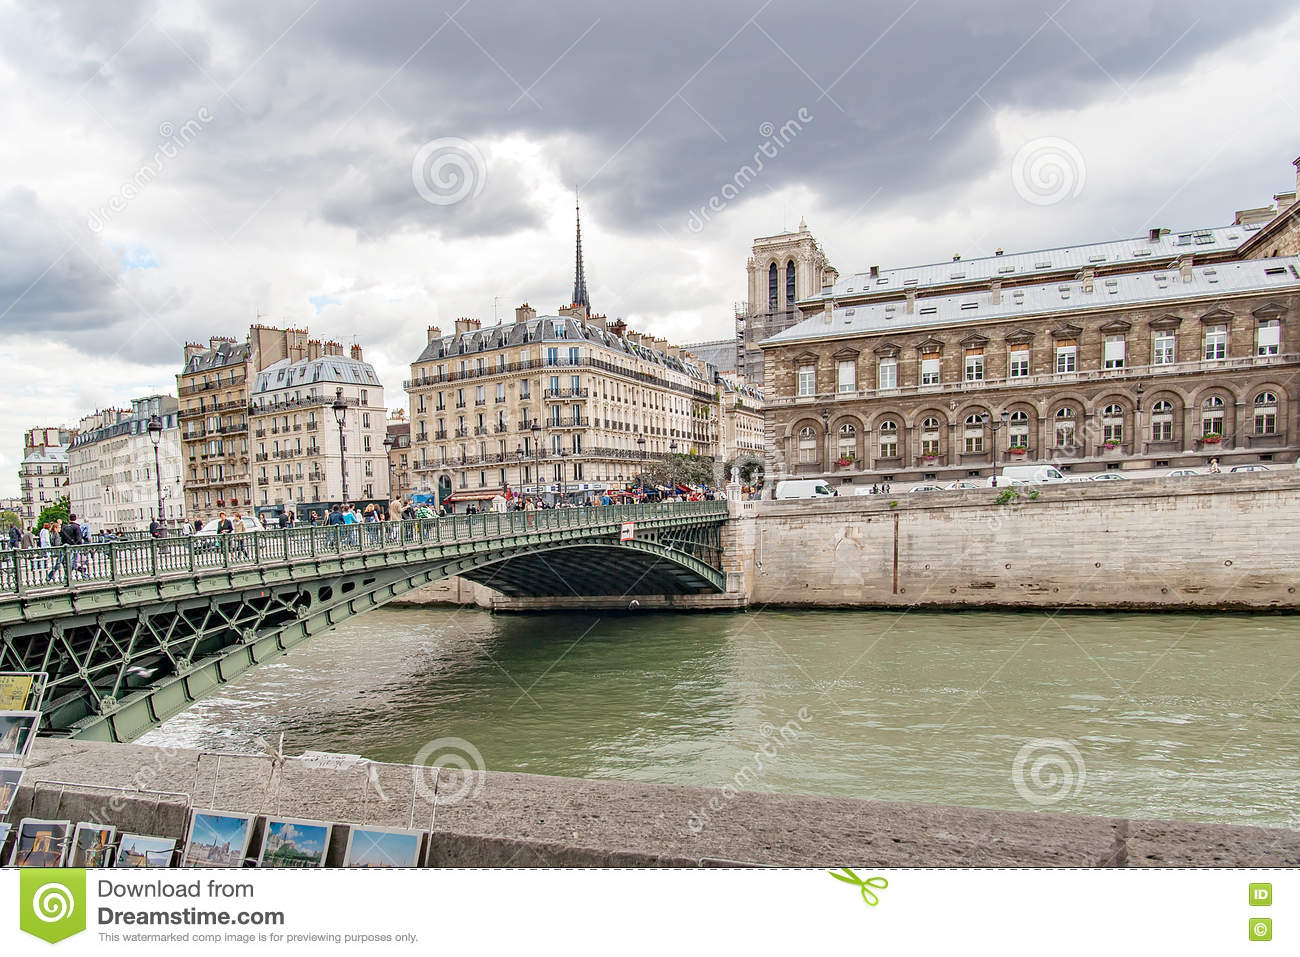 paris france paris franceviews of buildings monuments and famous